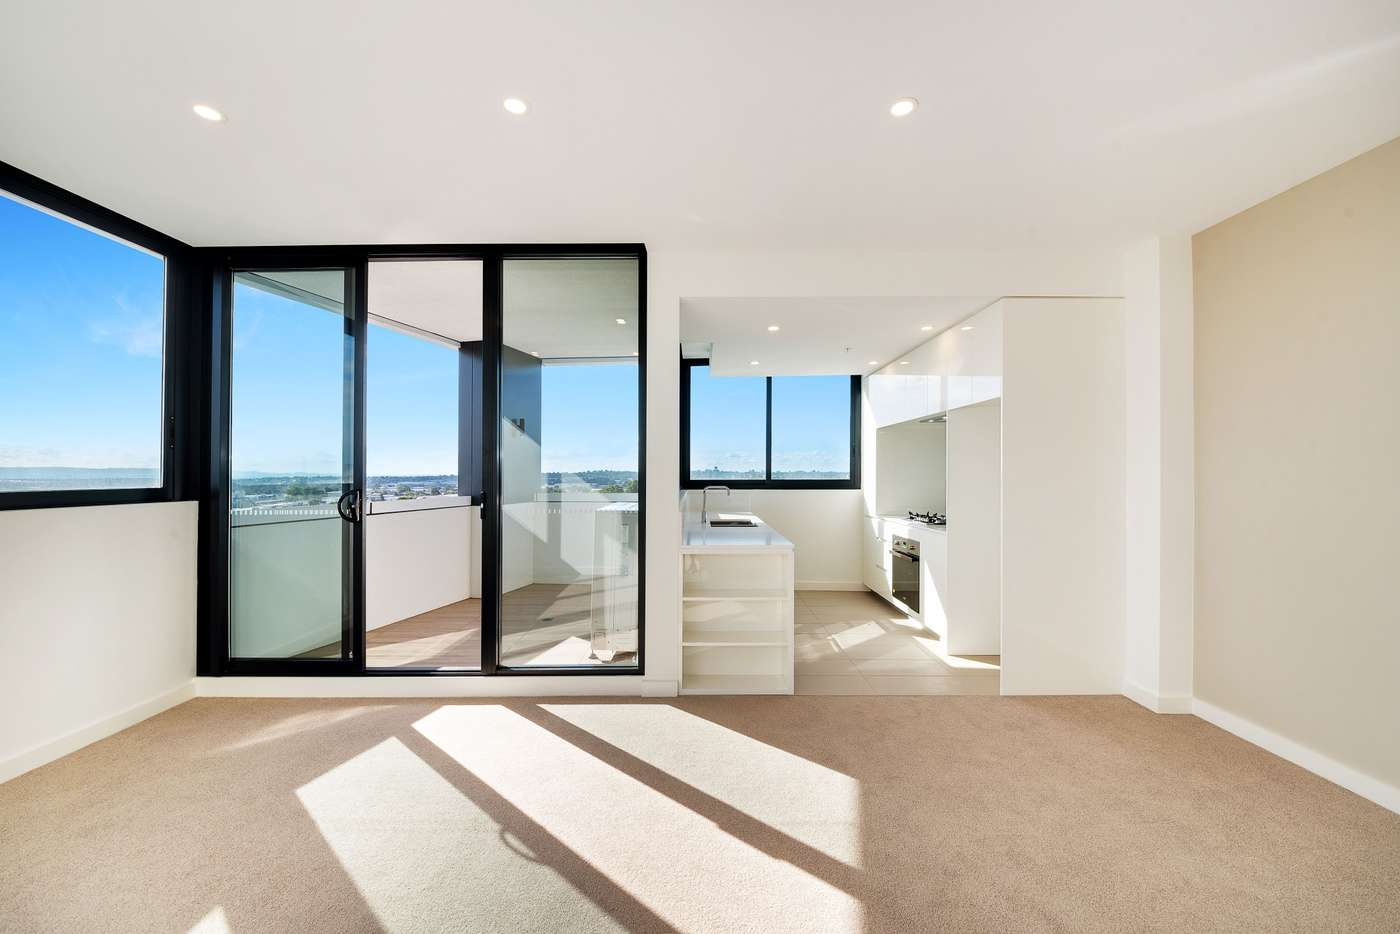 Main view of Homely apartment listing, 1002/1 Boys Avenue, Blacktown NSW 2148